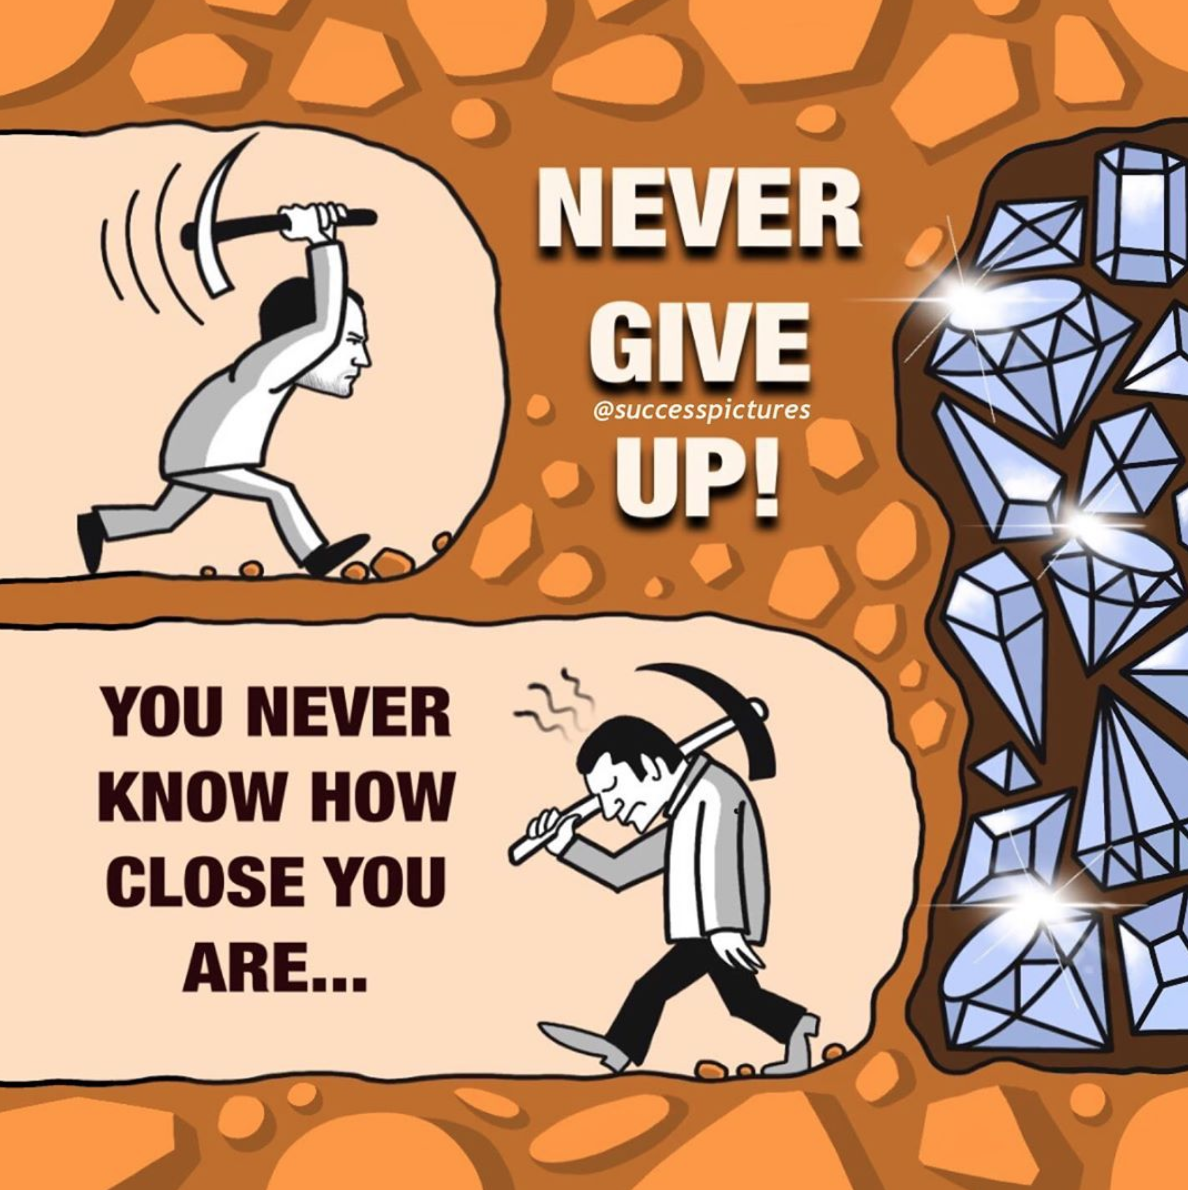 """YOU NEVER 3 /~ KNOW How 997 417.1 CLOSE vou 4'"""". ARE... ' https://inspirational.ly"""